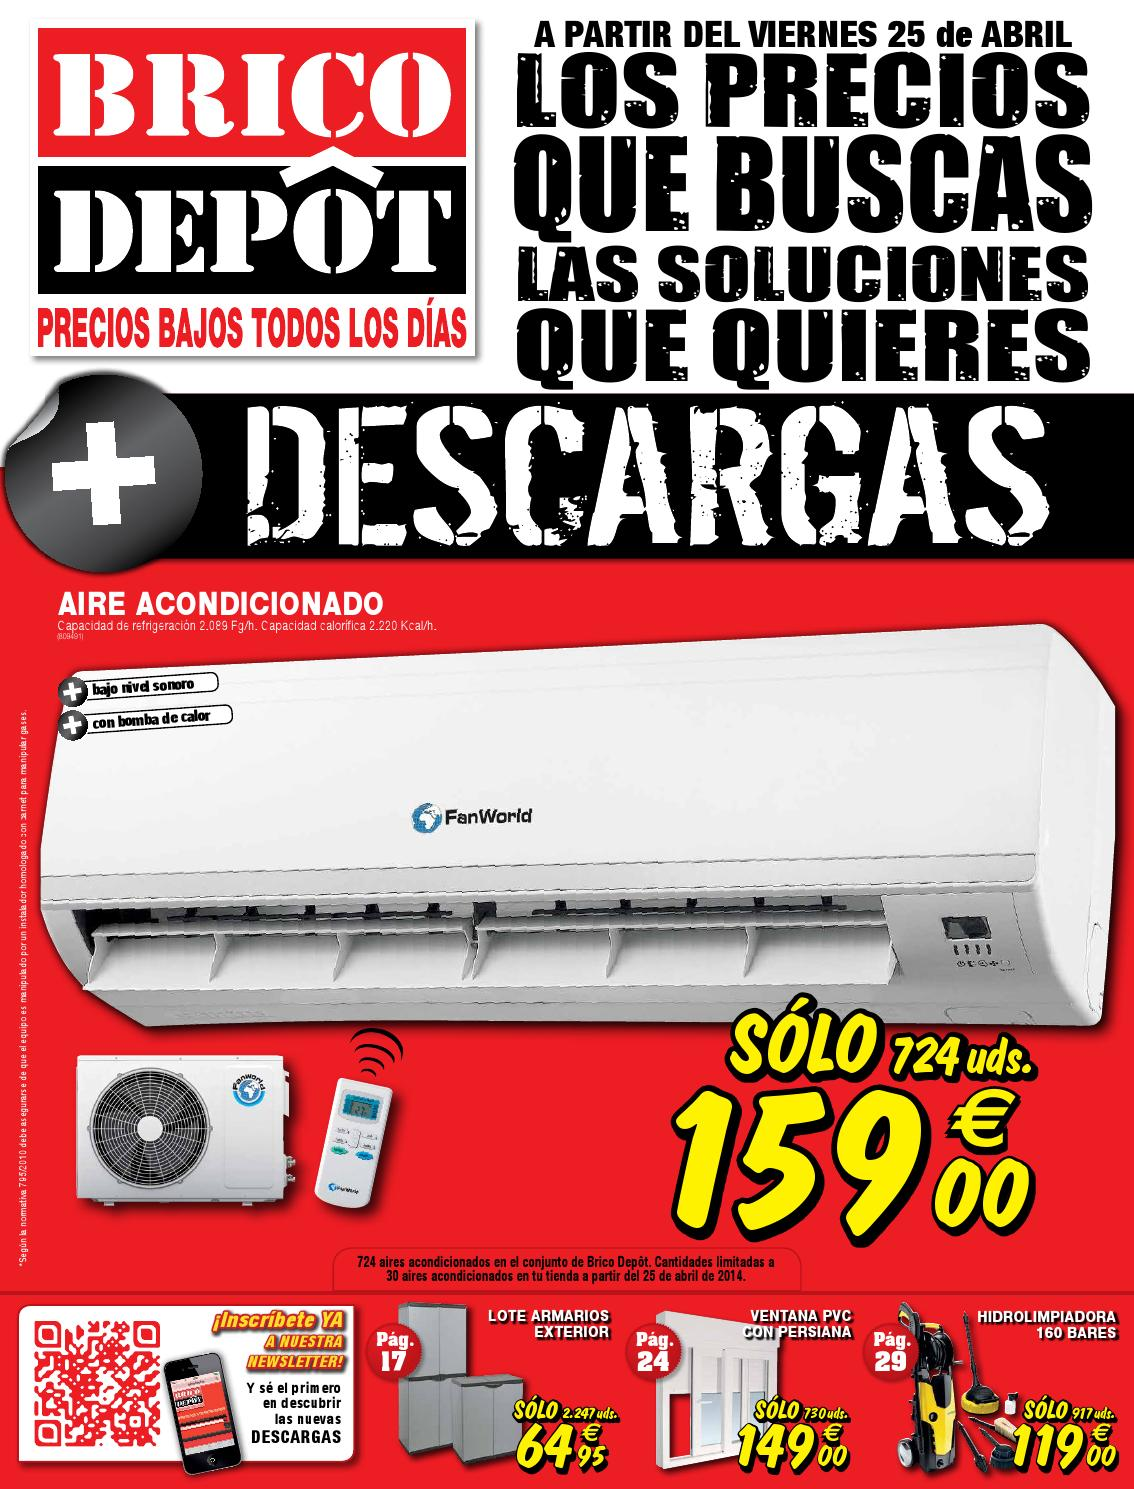 Bricodepot Catalogue 25abril 8mayo2014 By Catalogopromociones Com